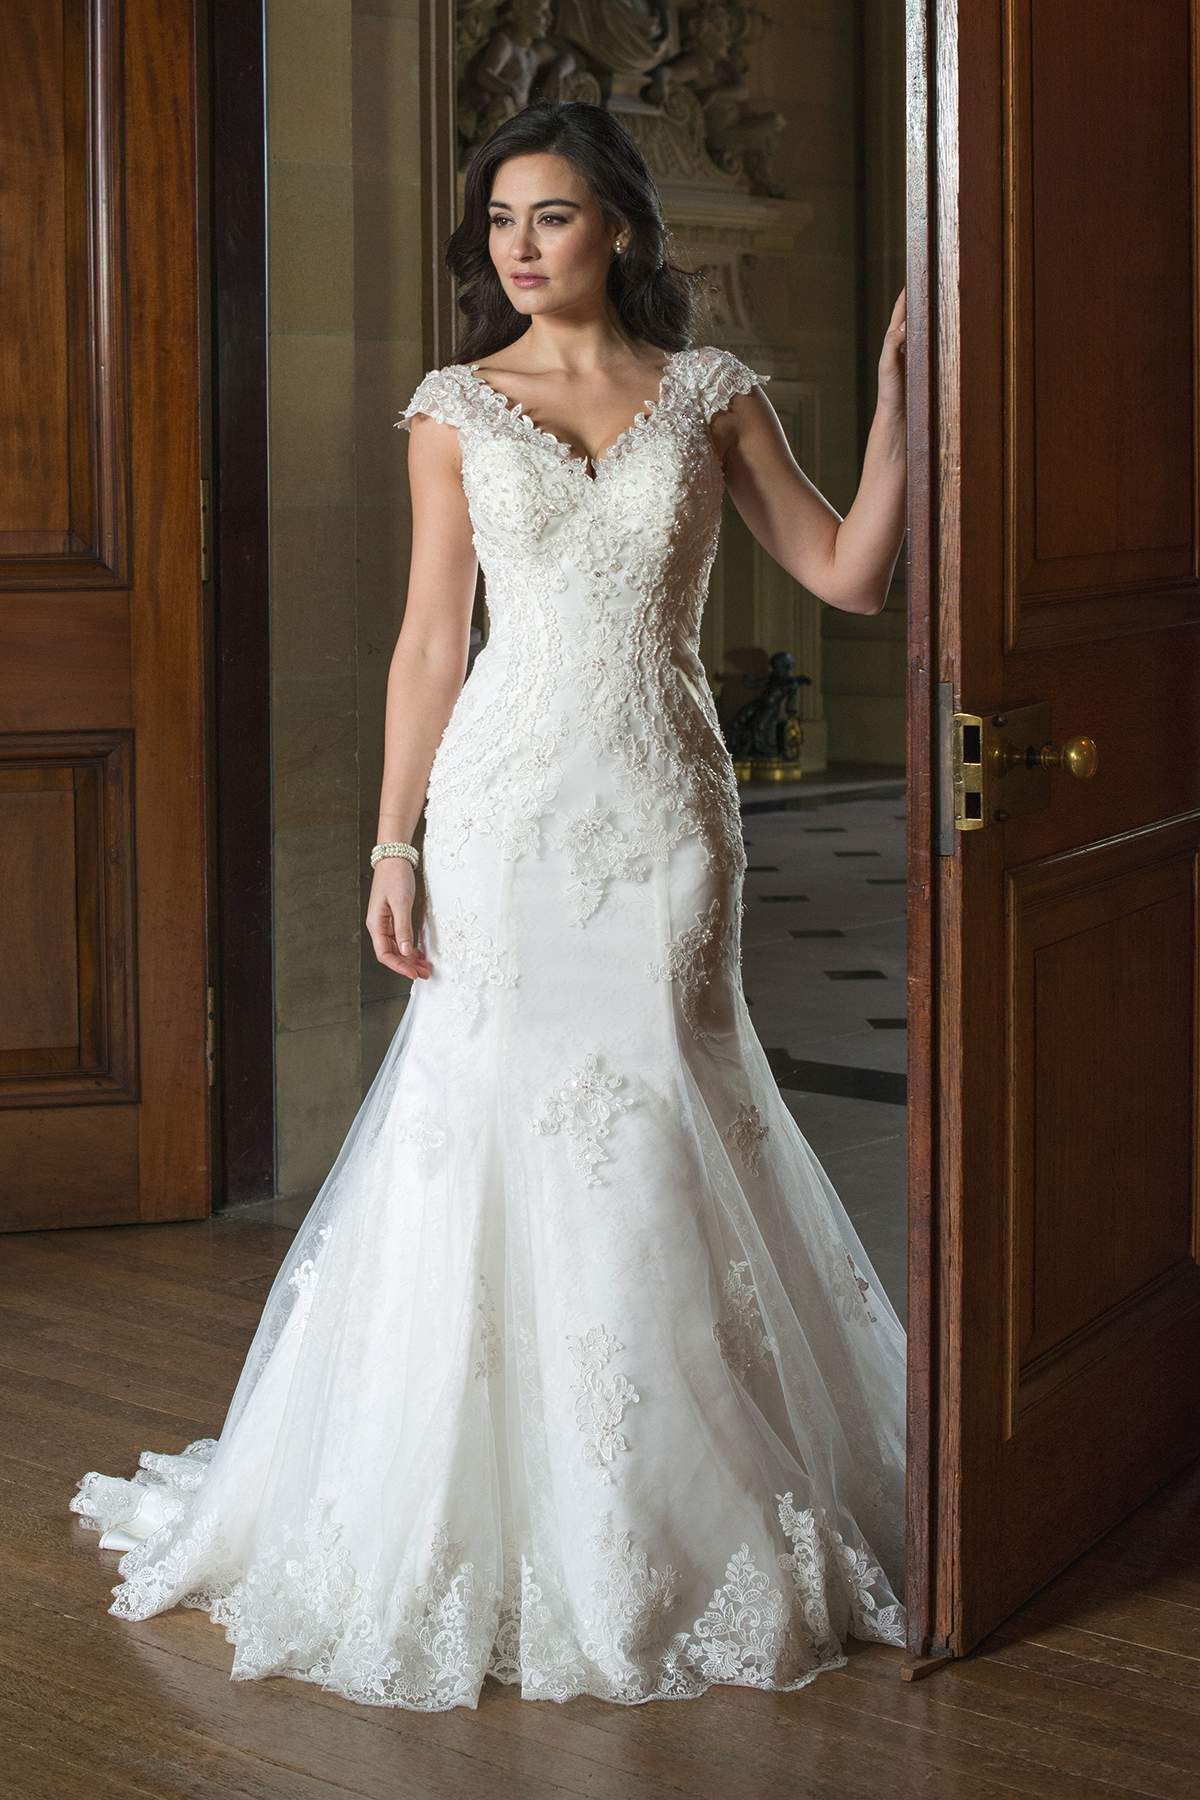 Style W435 by Alexia Bridal - Find Your Dream Dress